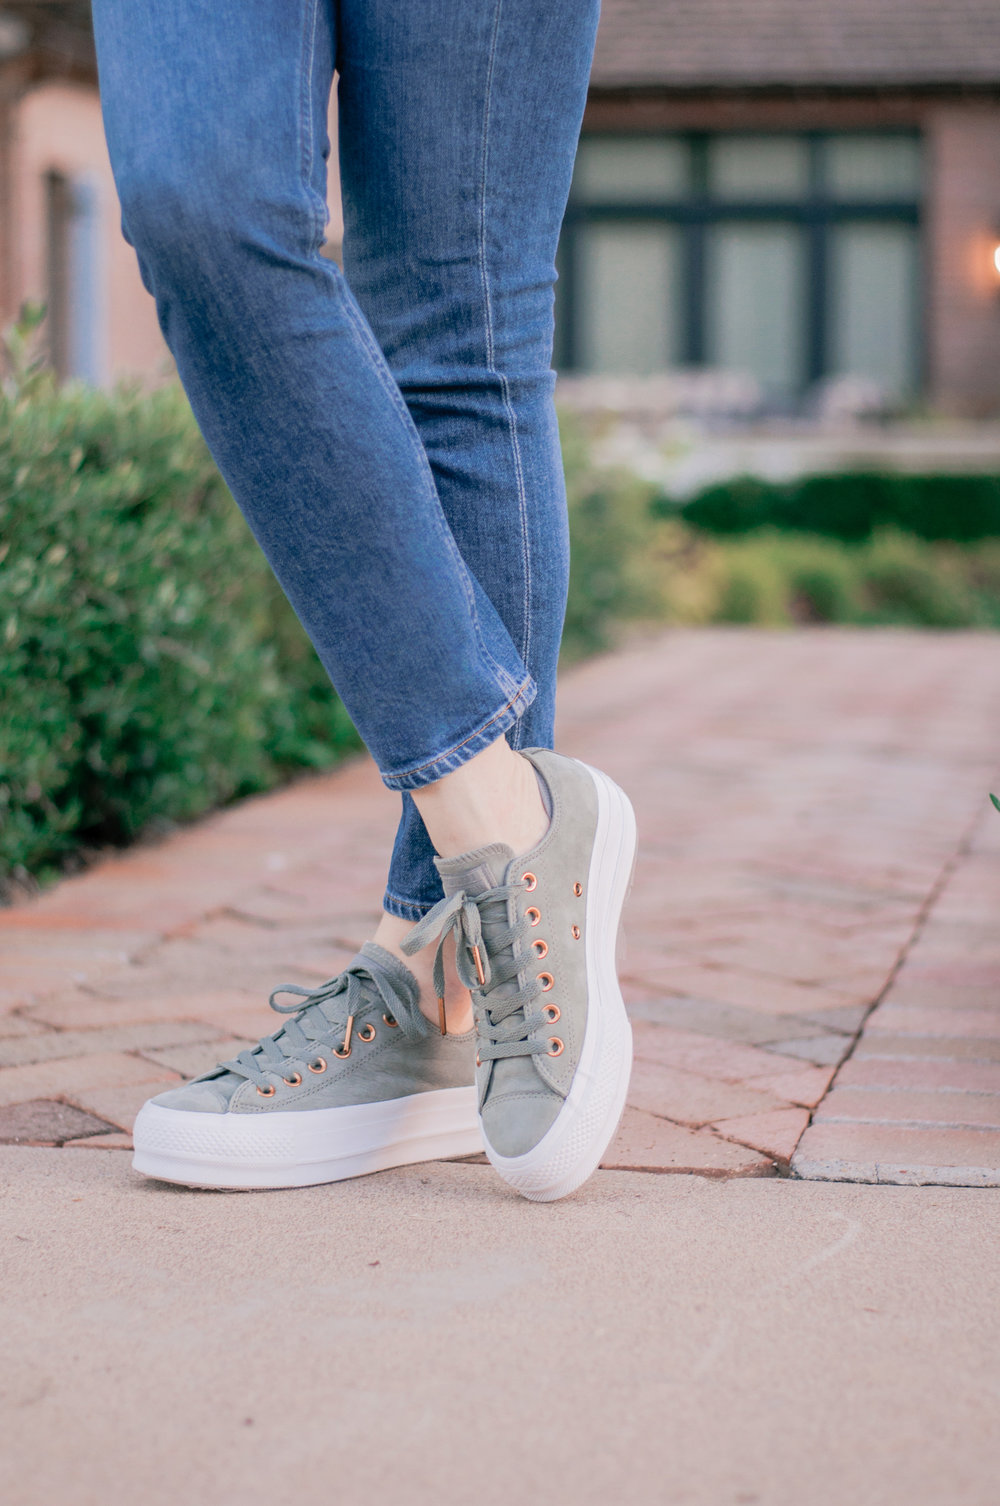 Cute Platform Sneakers for Women